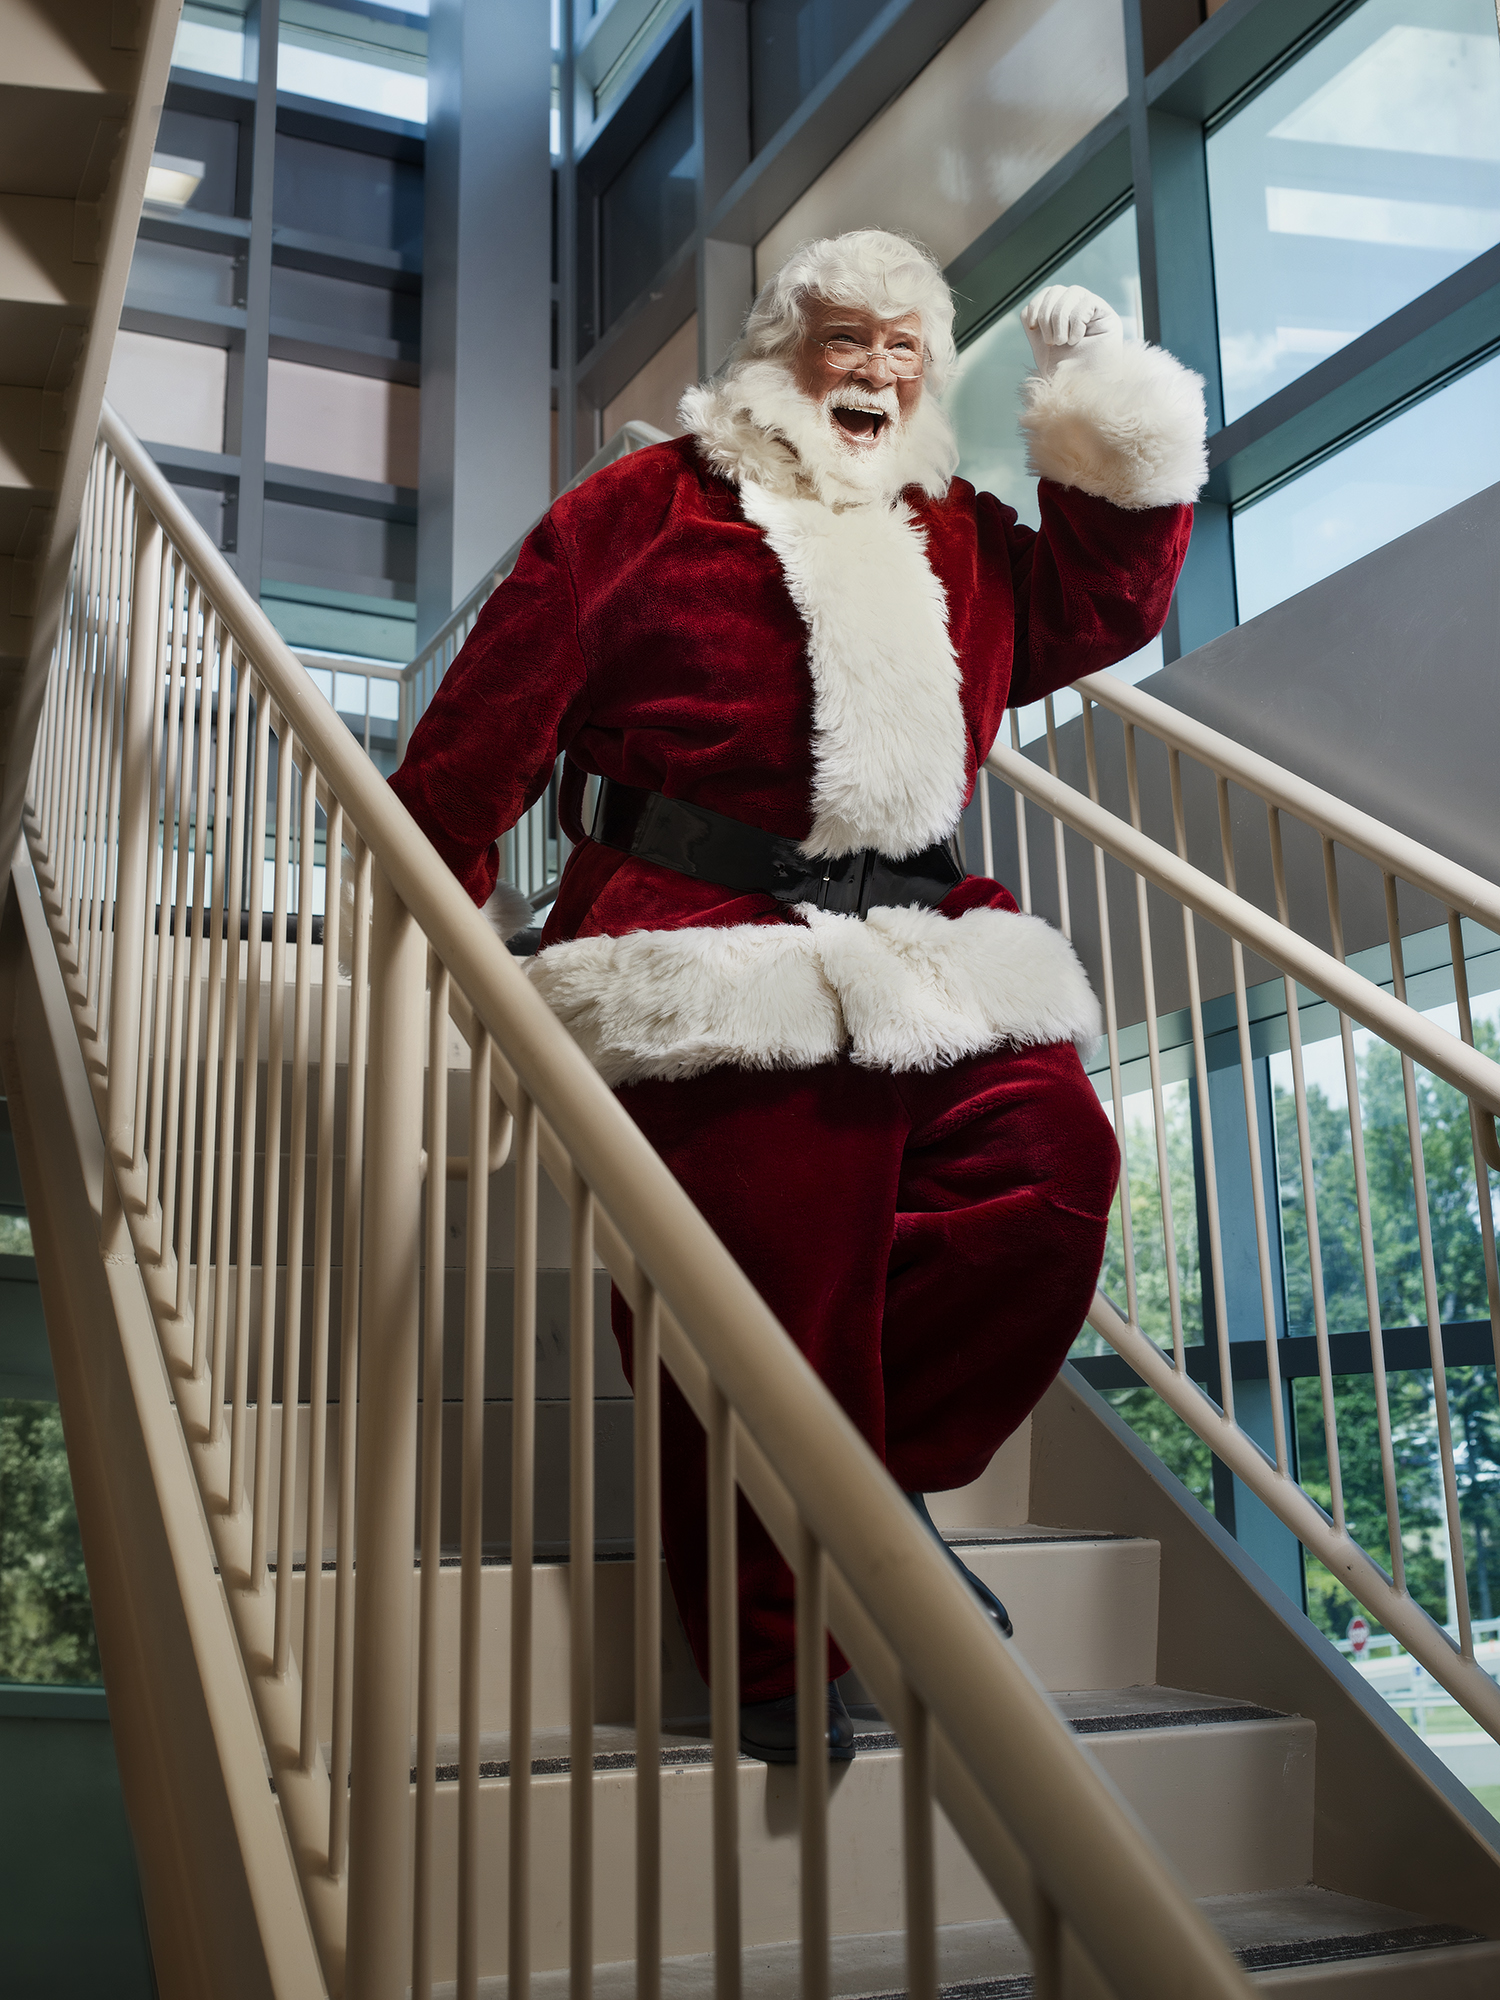 Santa taking stairs